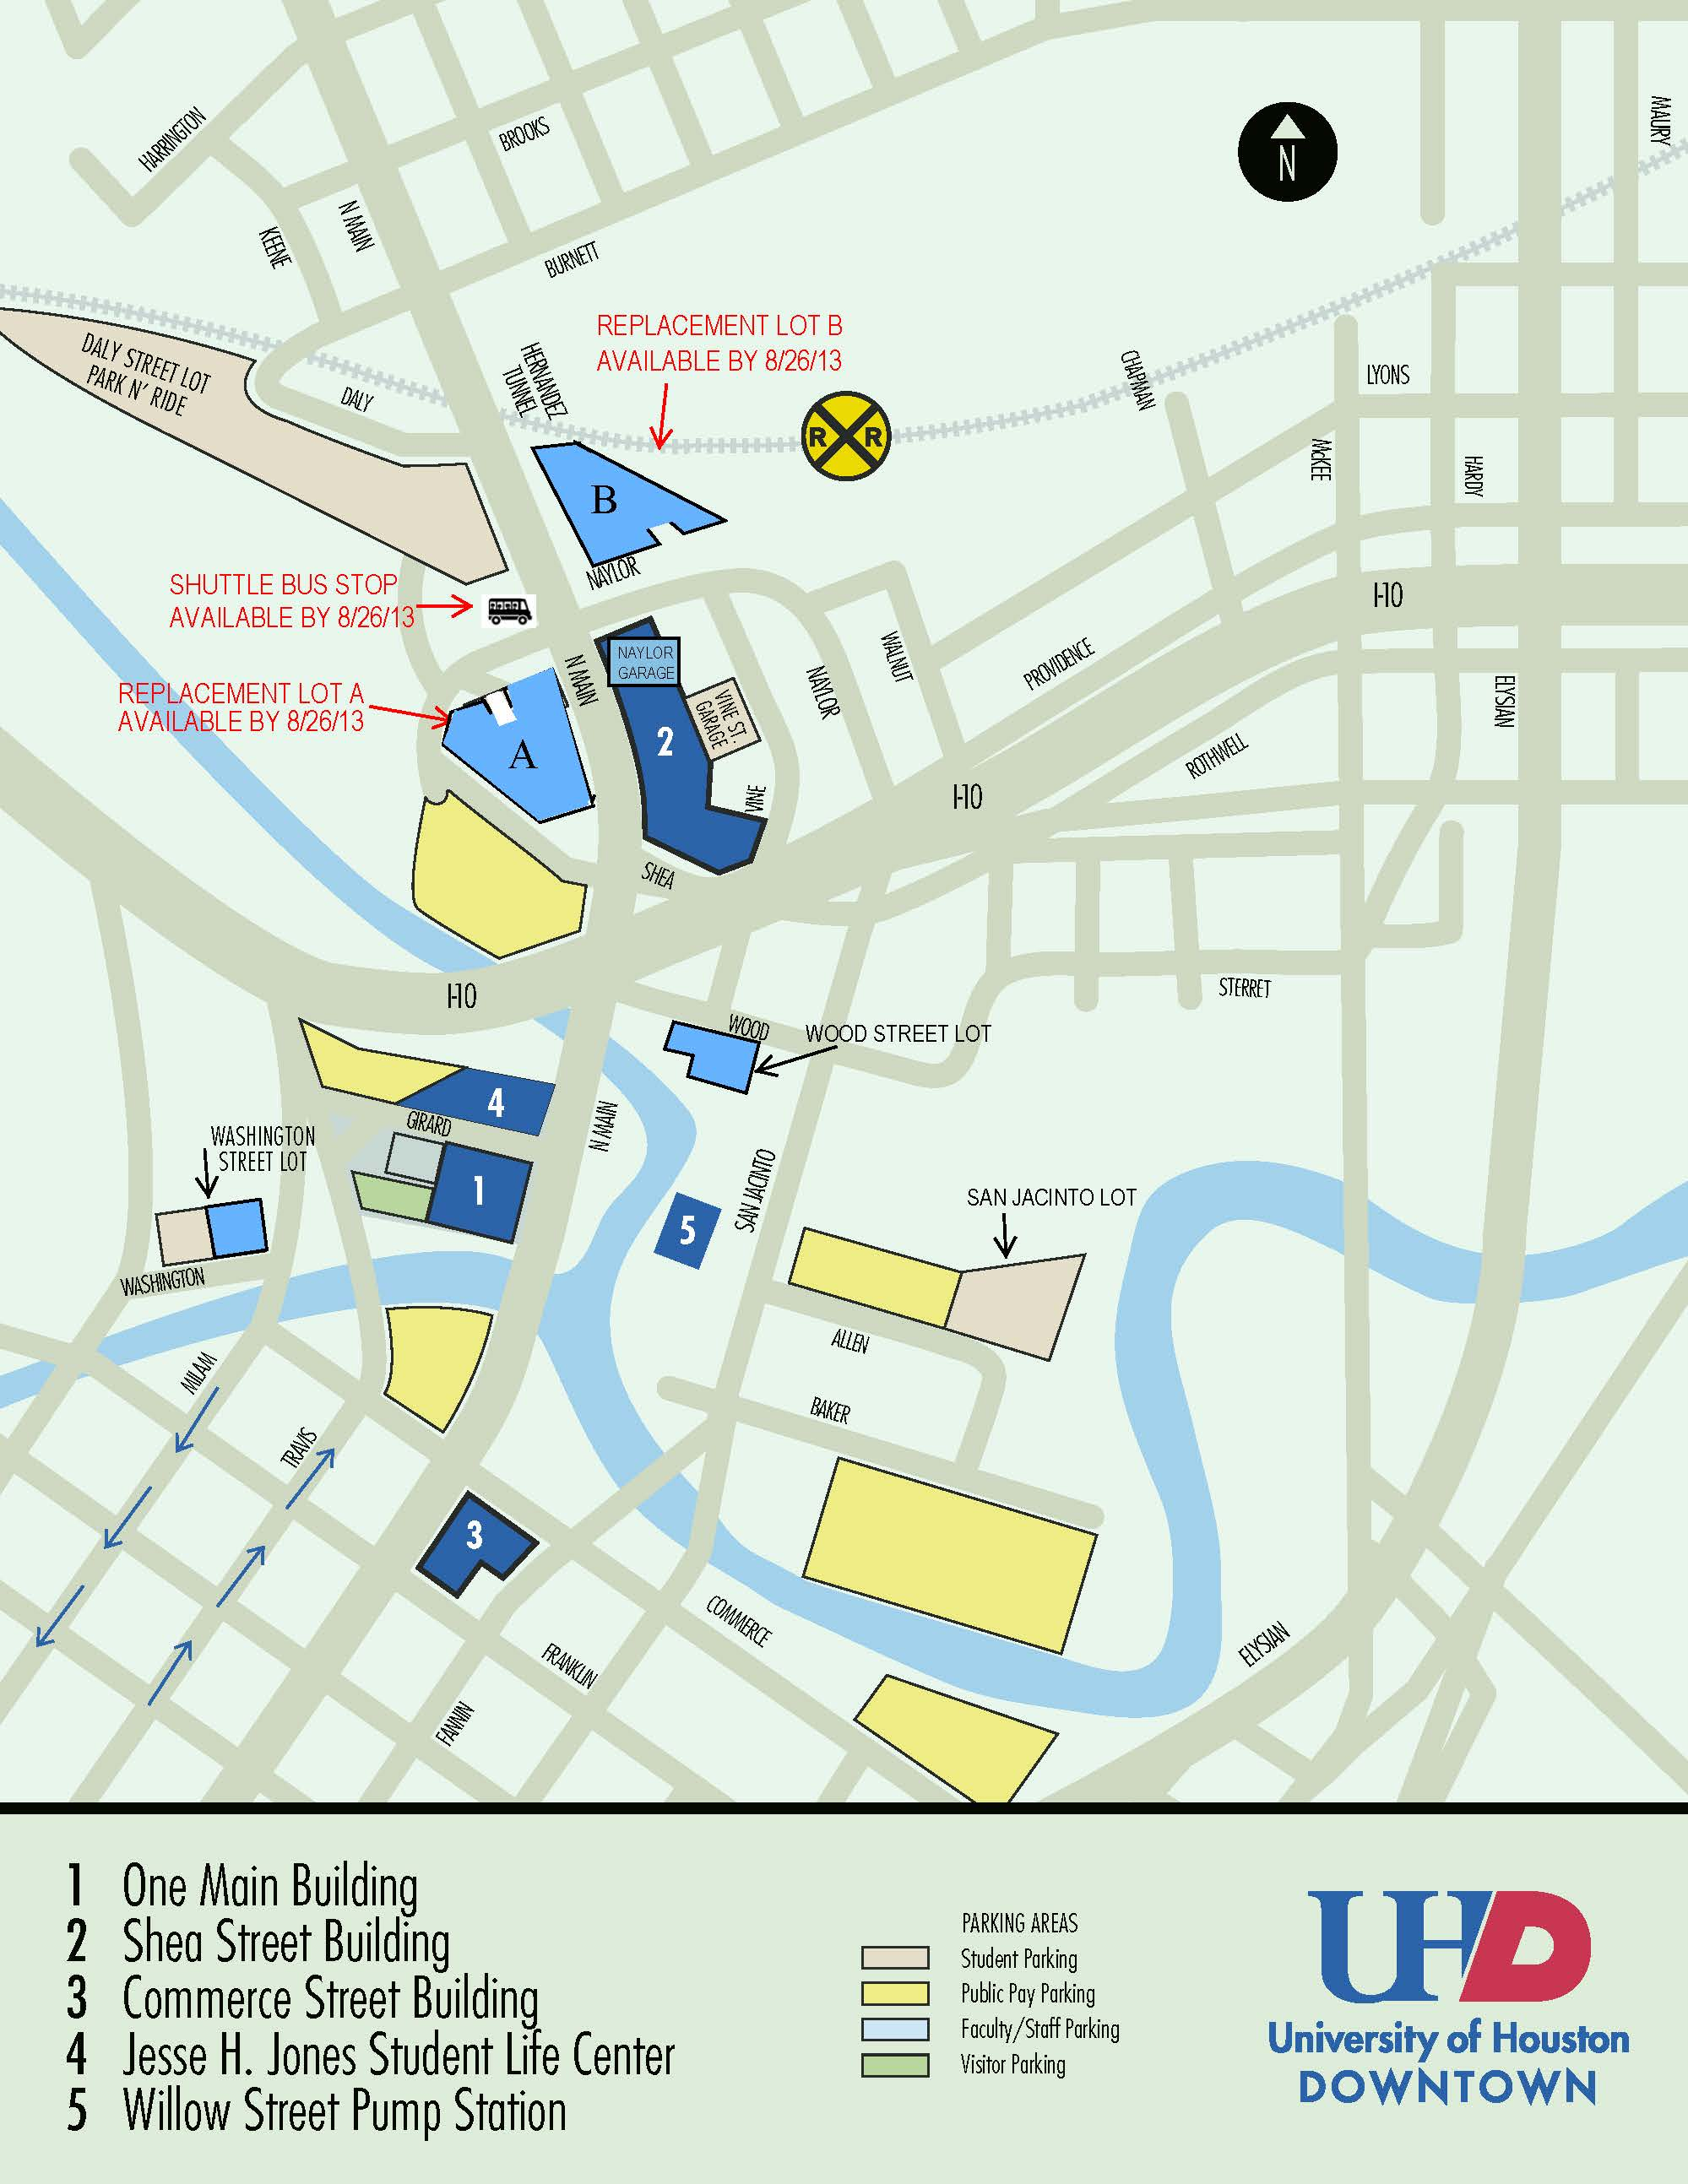 UHD Parking Map with Replacement Lot Locations